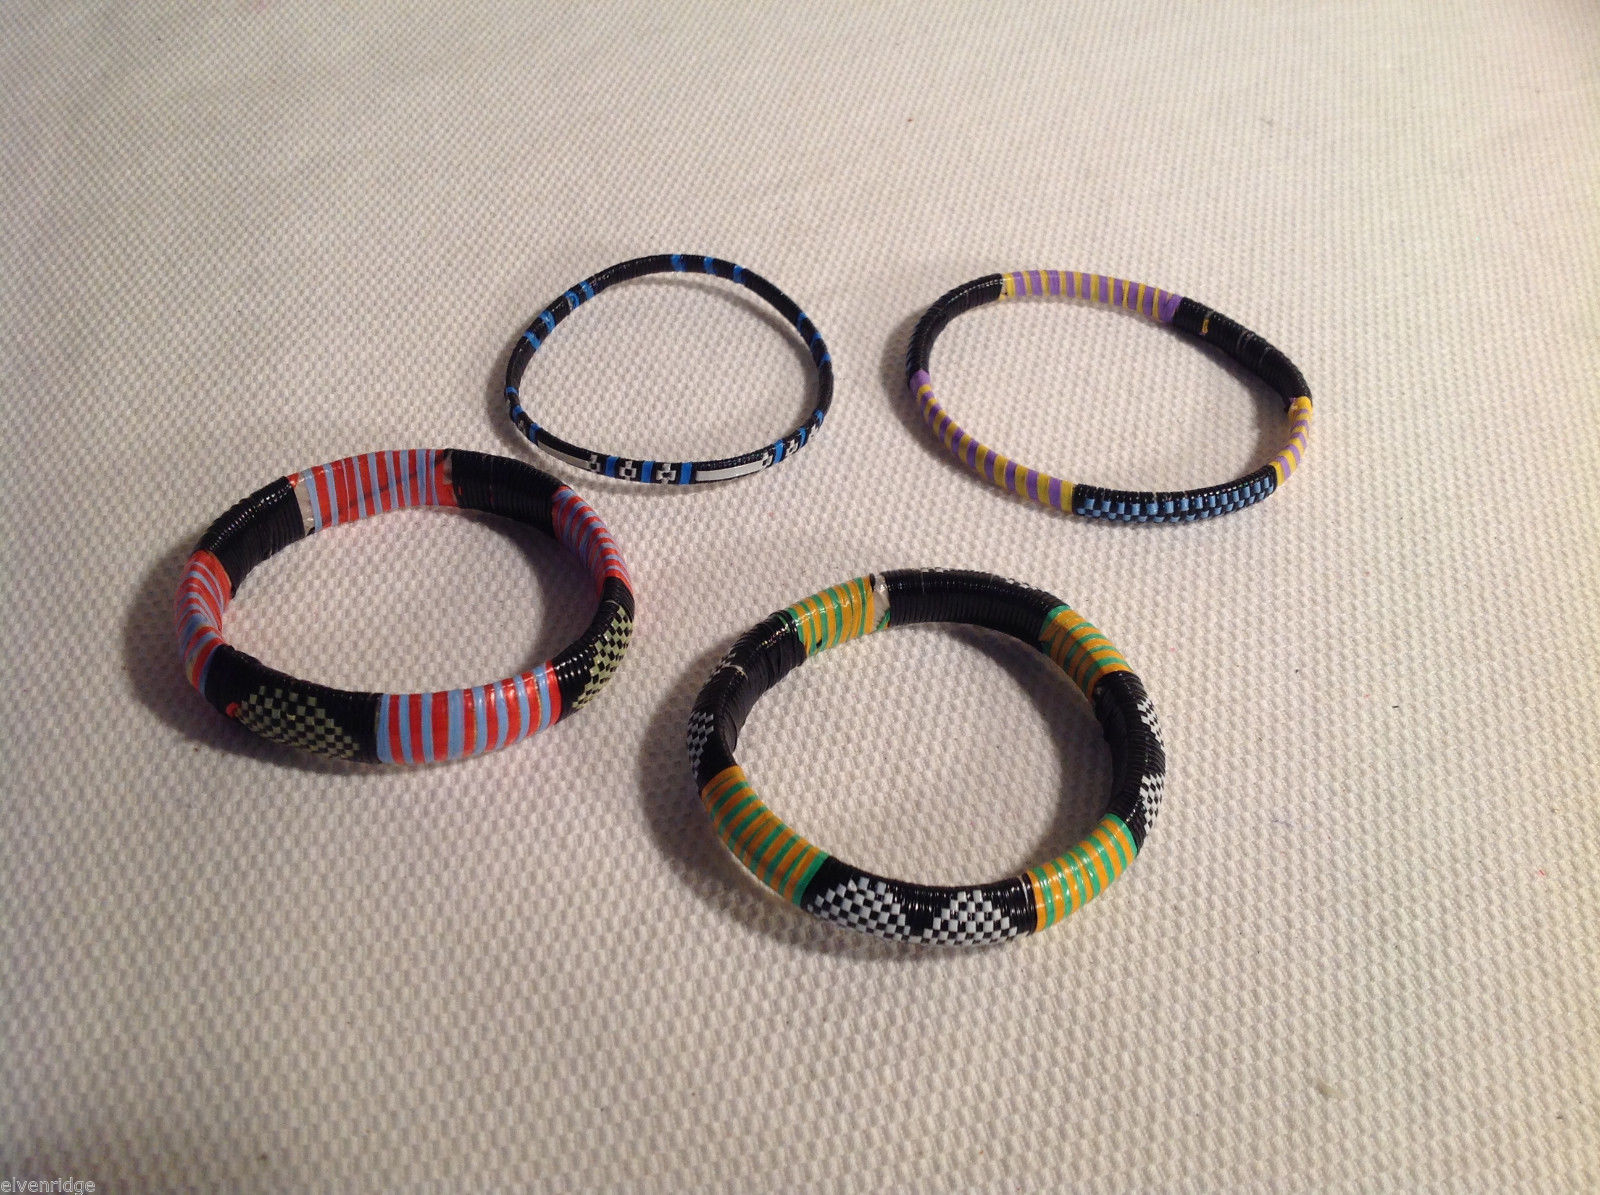 Lot of 4 Plastic woven bracelets handmade multicolor made in Africa